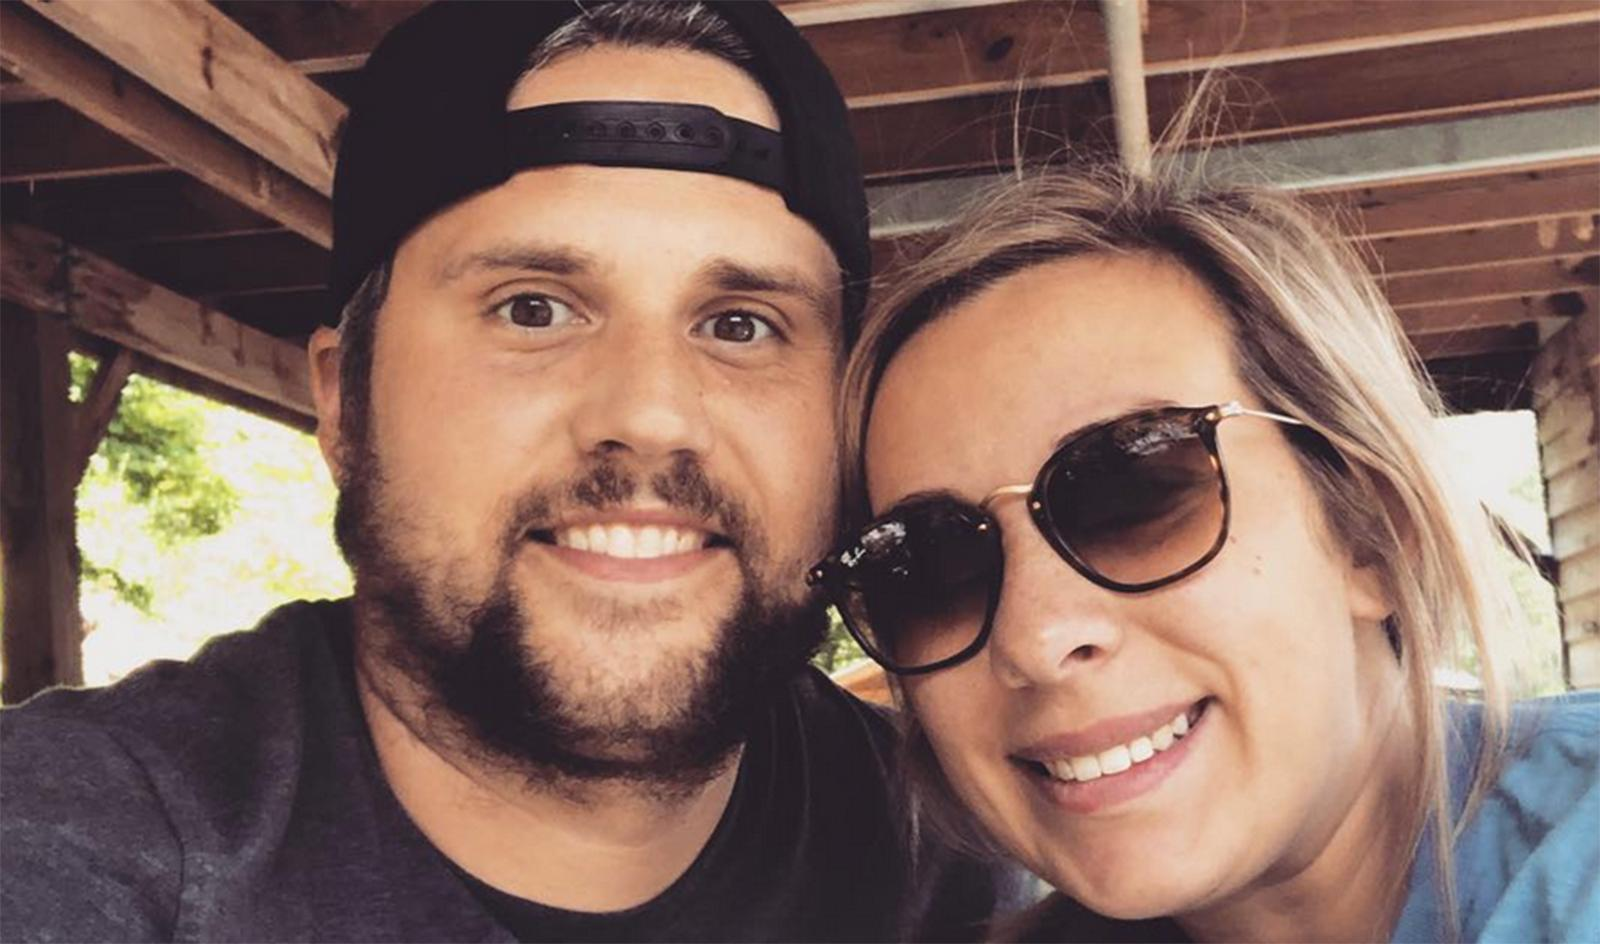 Ryan Edwards And Mackenzie Standifer - Will She Leave Him While The Teen Mom Star Is In Jail?